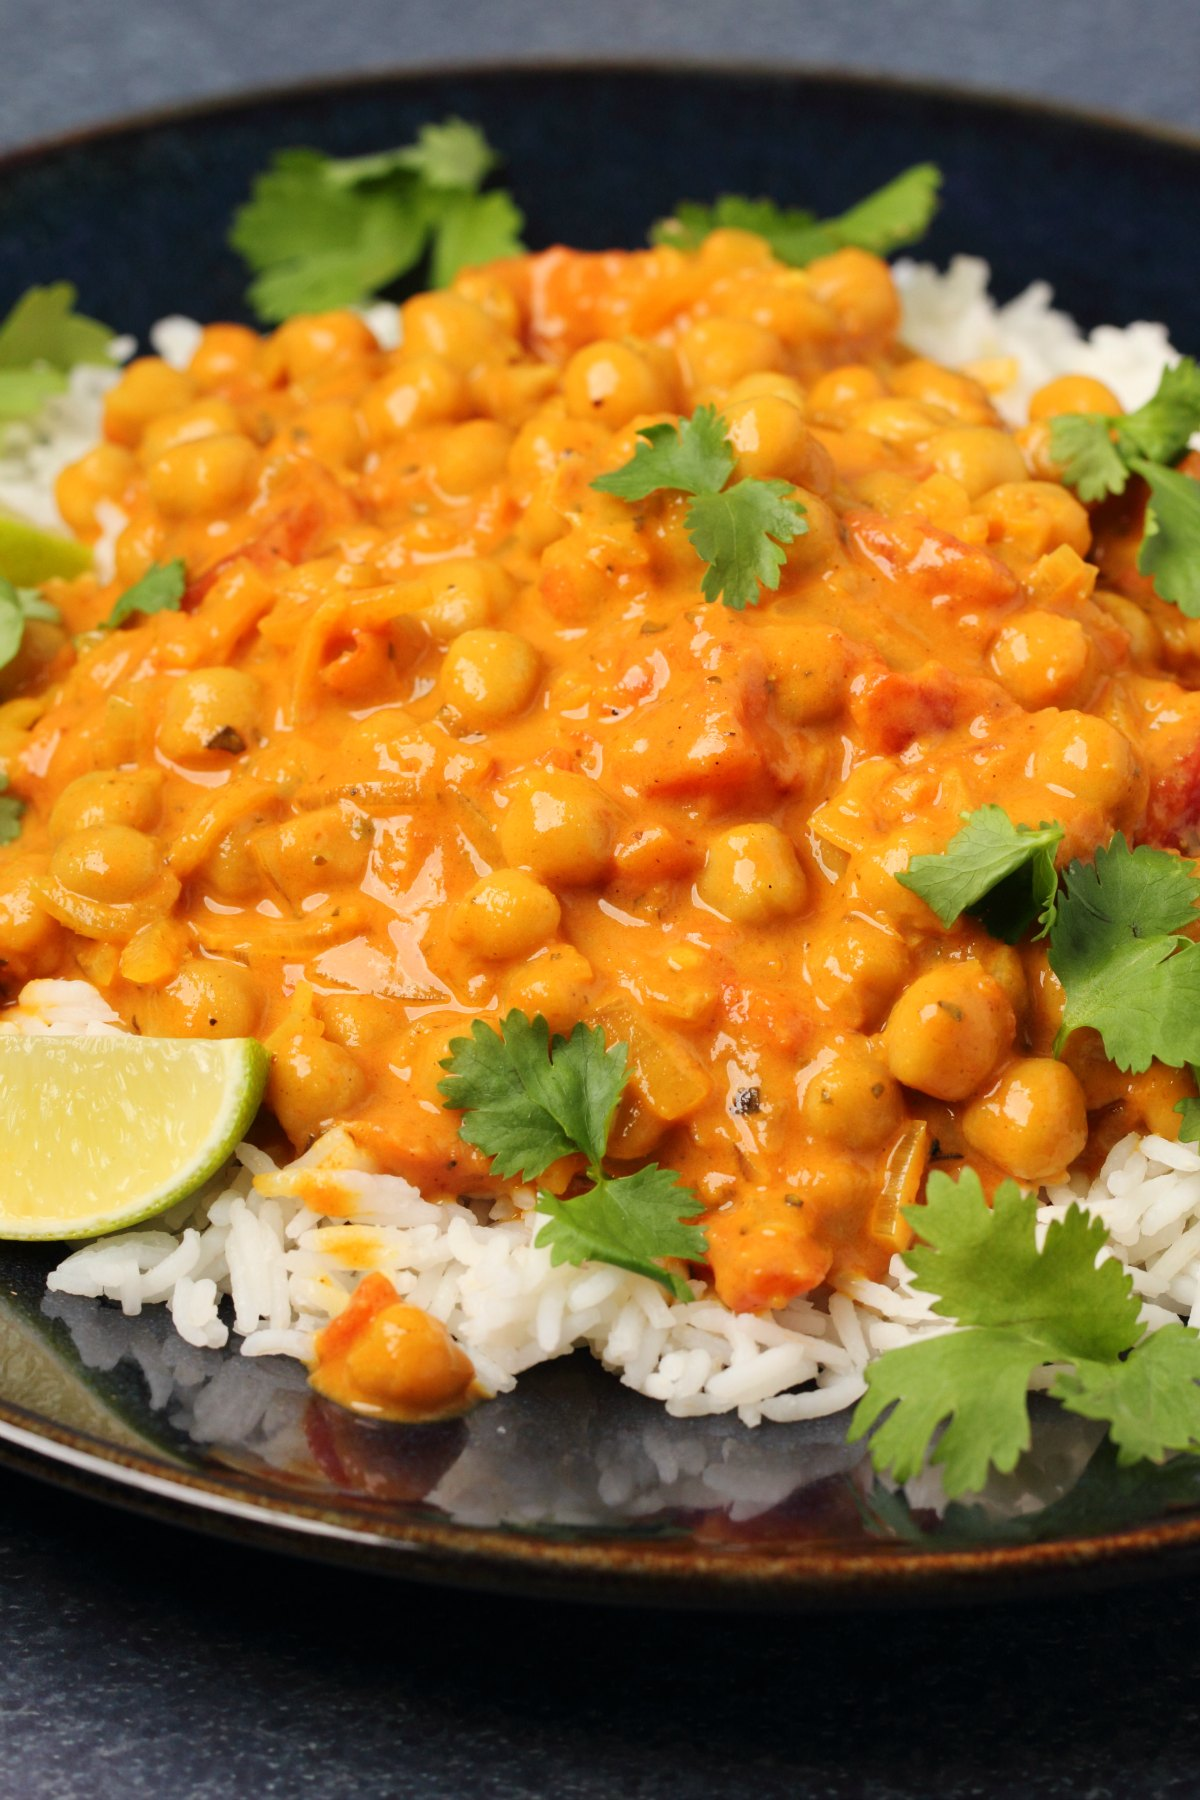 Chickpea curry served over basmati rice in a black bowl.